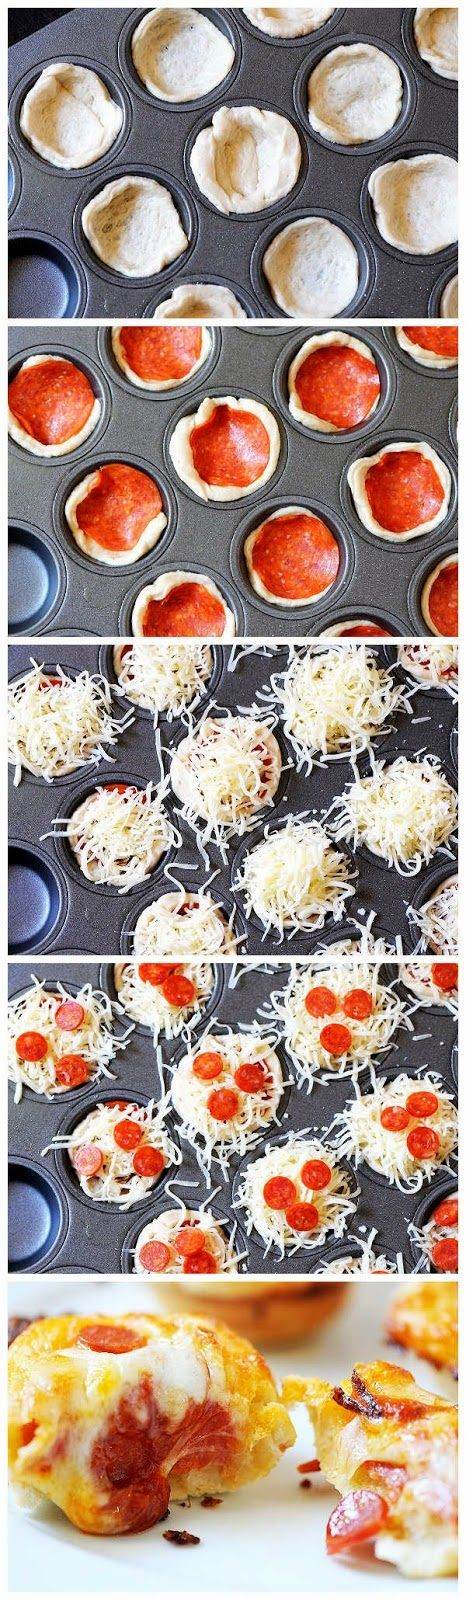 Deep Dish Pizza Bites #recipe #appetizer #pizza